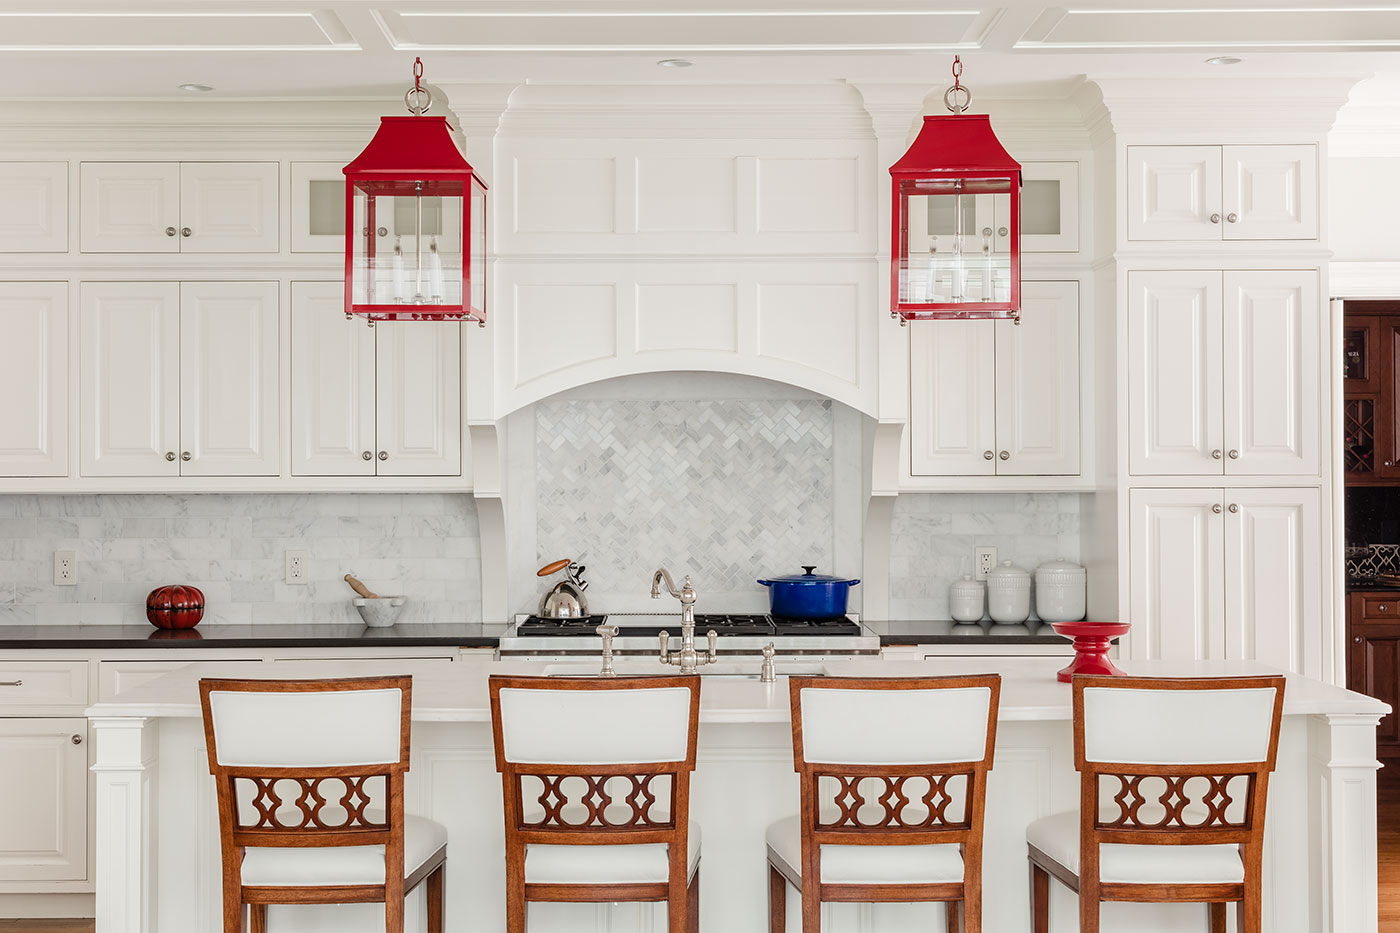 High-end red, white and blue kitchen design by Carter & Company Interior Design